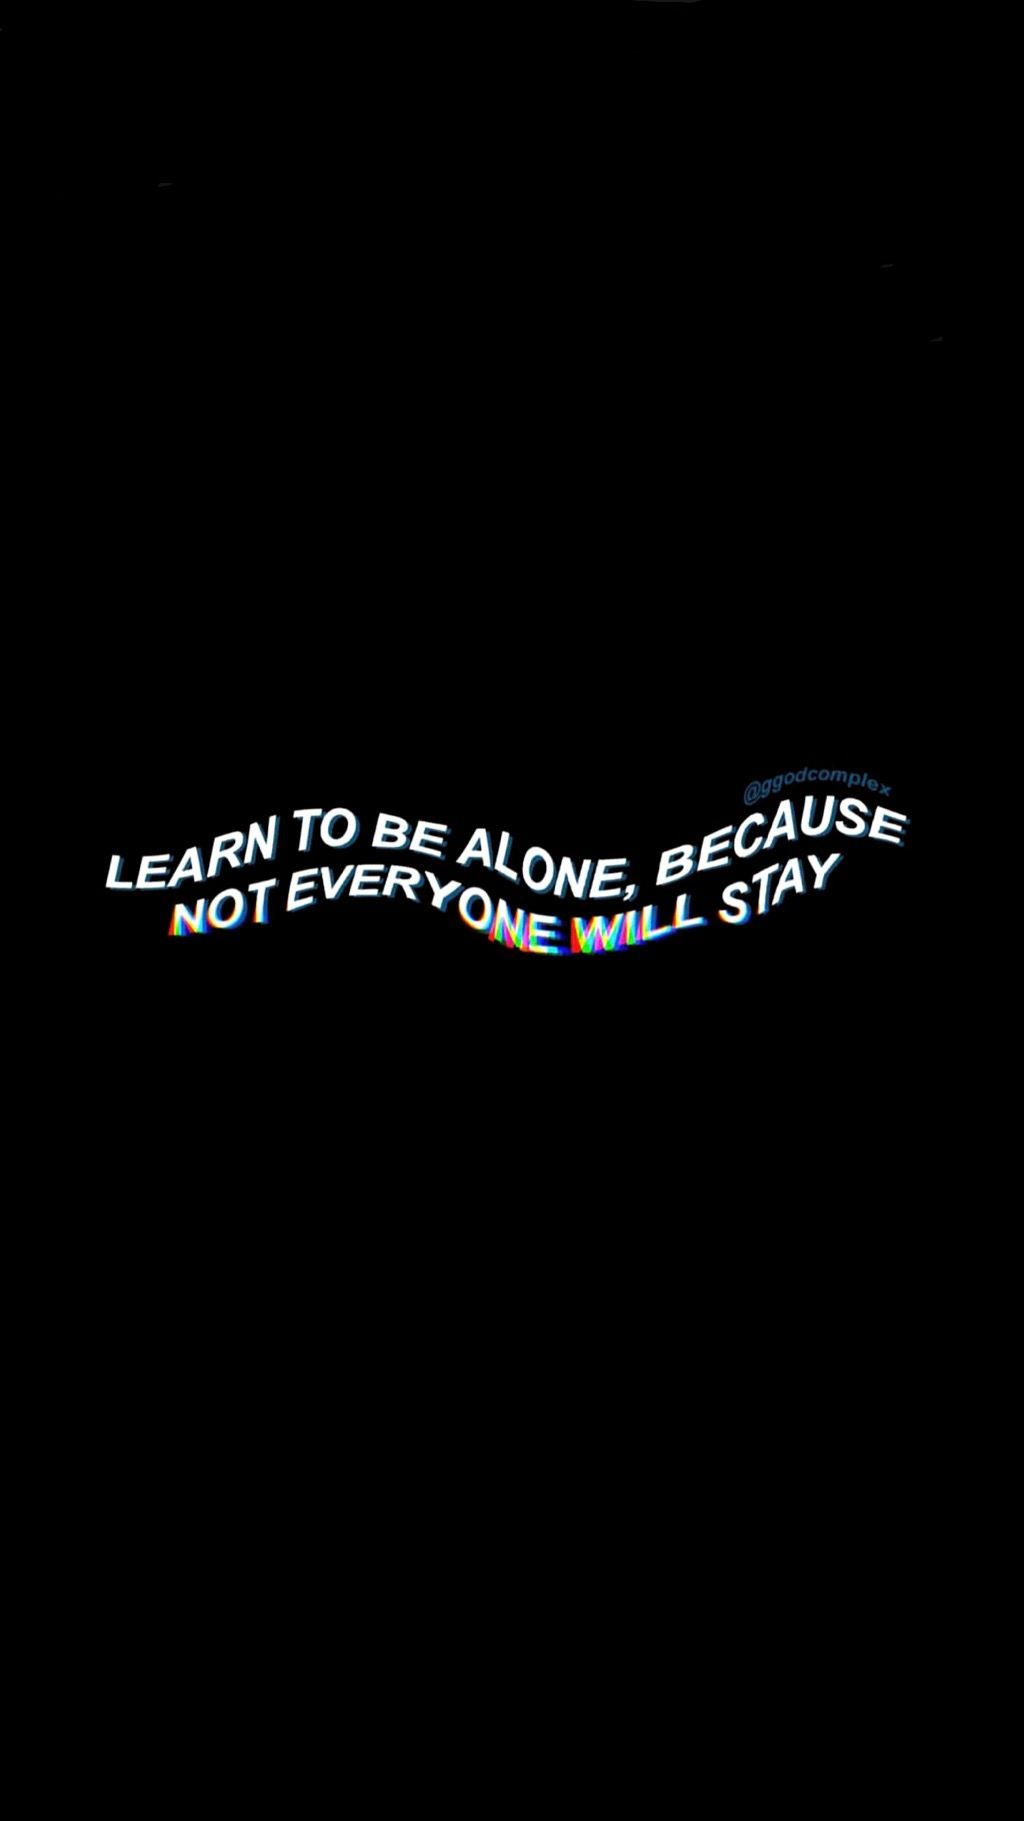 Pin By Gemma Belle On Iphone Wallpaper Wallpaper Quotes Wallpaper Iphone Quotes Learning To Be Alone